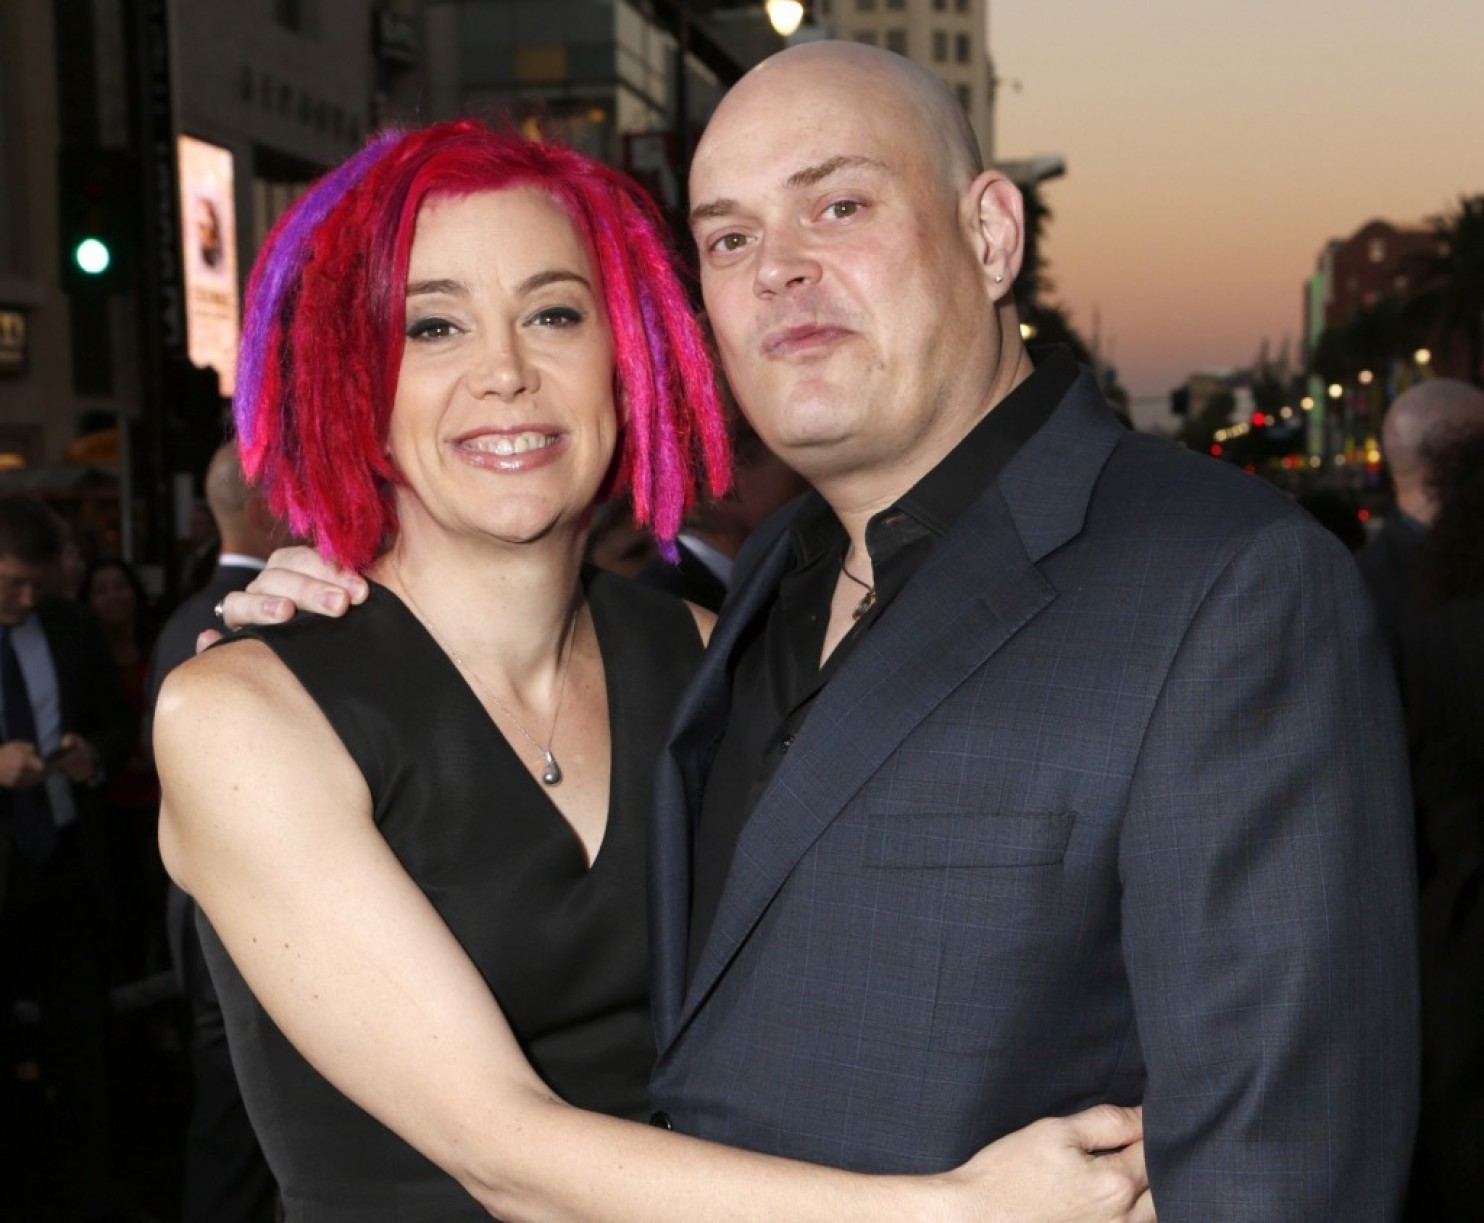 Lana Wachowski with Lilly before